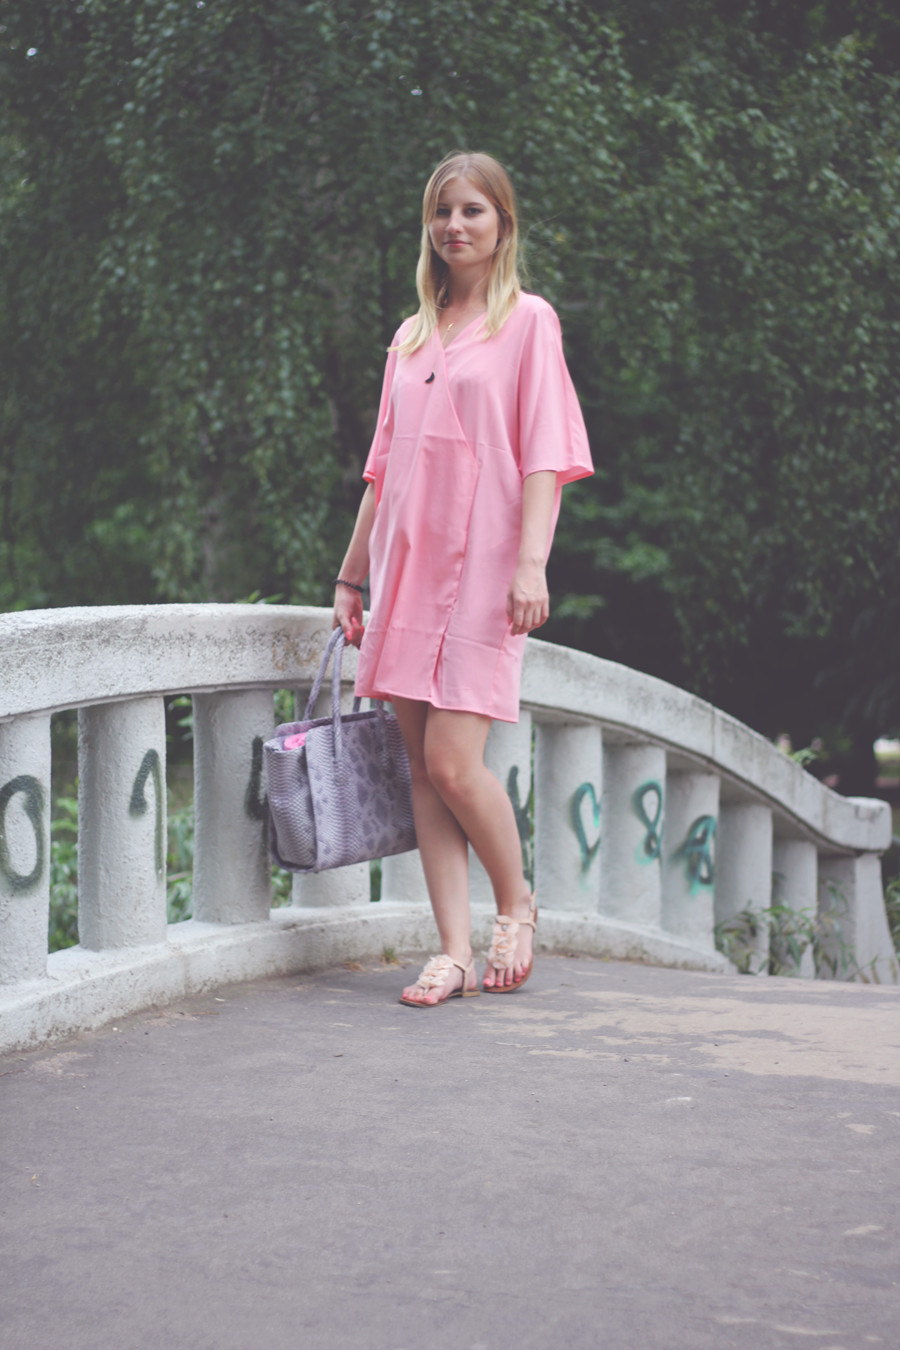 Outfit-lake-day-tagamsee-bridge-brücke-blondie-pink-asos-dress-bag-about-you-primark-sandals-cute-flowers-girly-summer-sun-naked